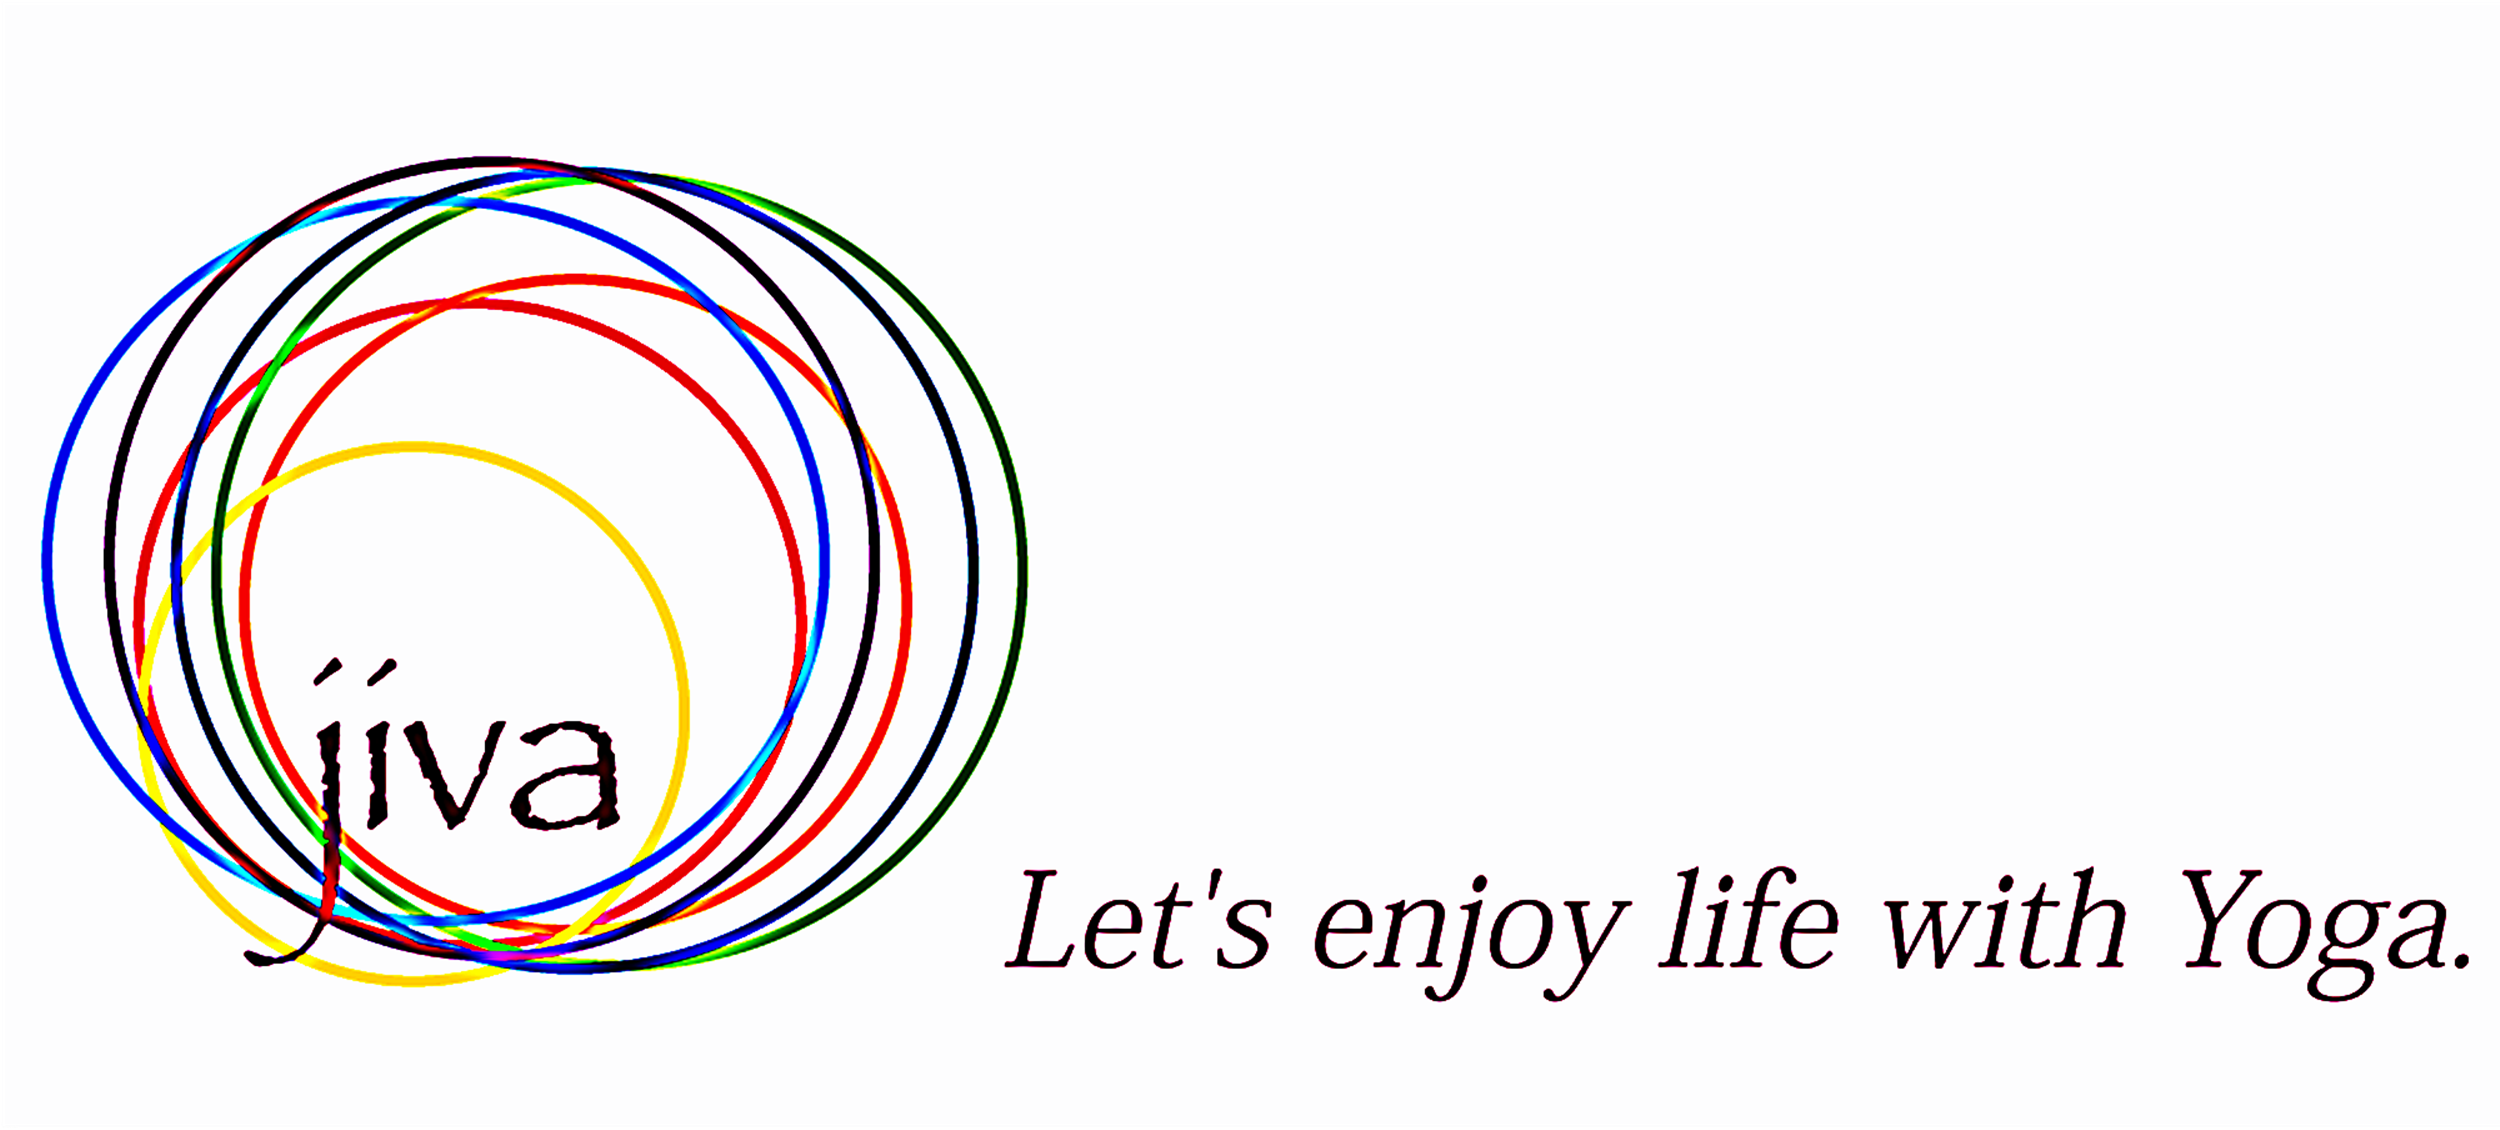 Let's enjoy life with Yoga